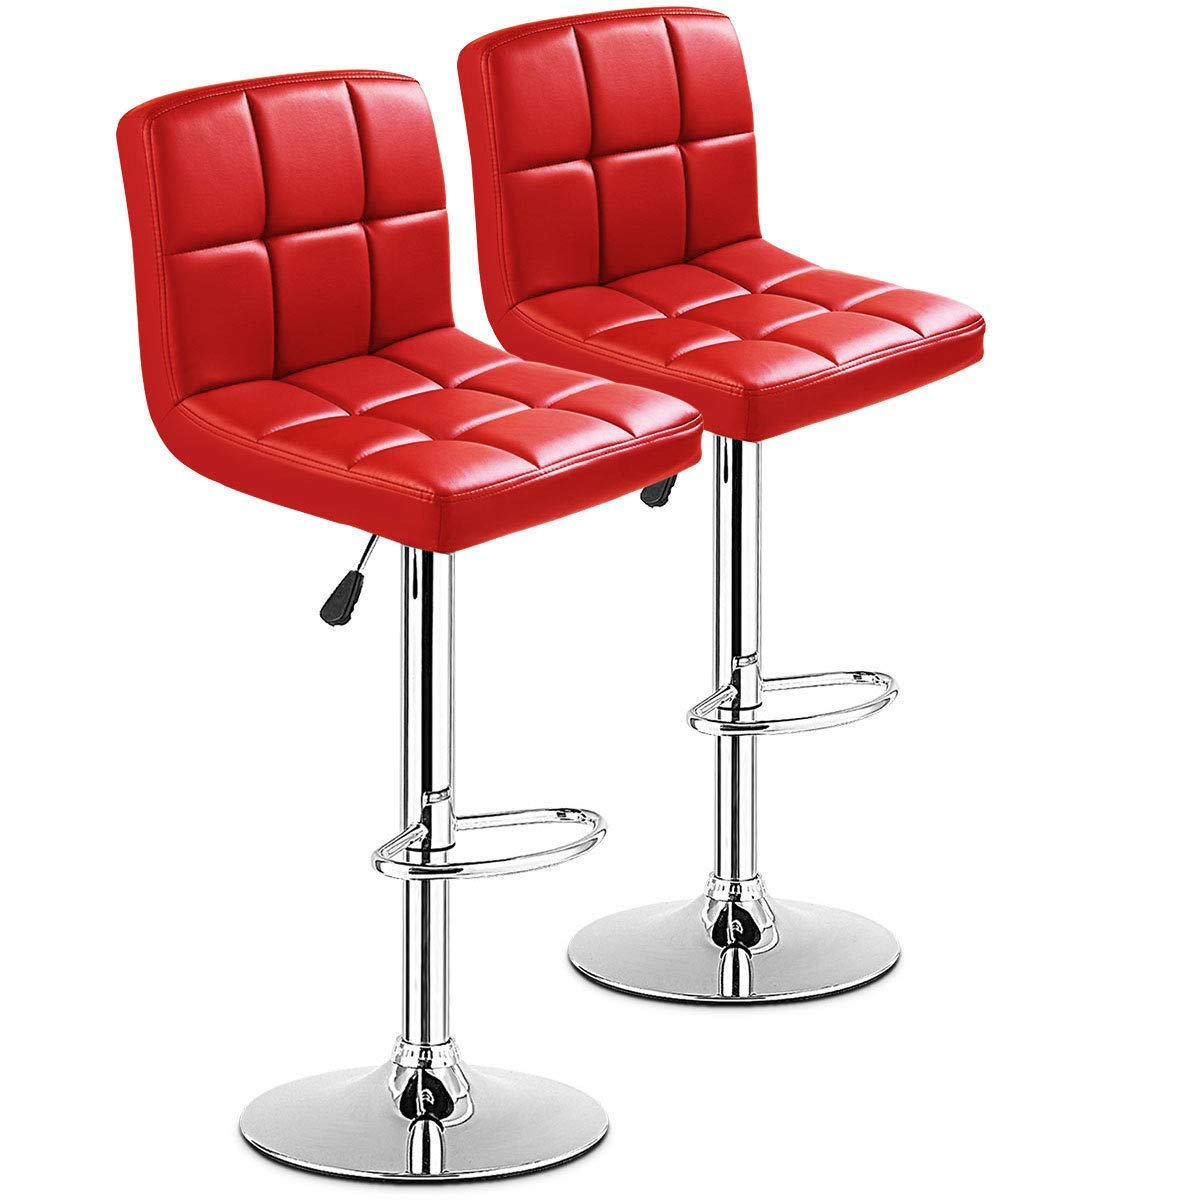 GHP 2-Pcs 330-Lbs Red PU Leather & Steel Pneumatic Swivel Barstools with Footrest